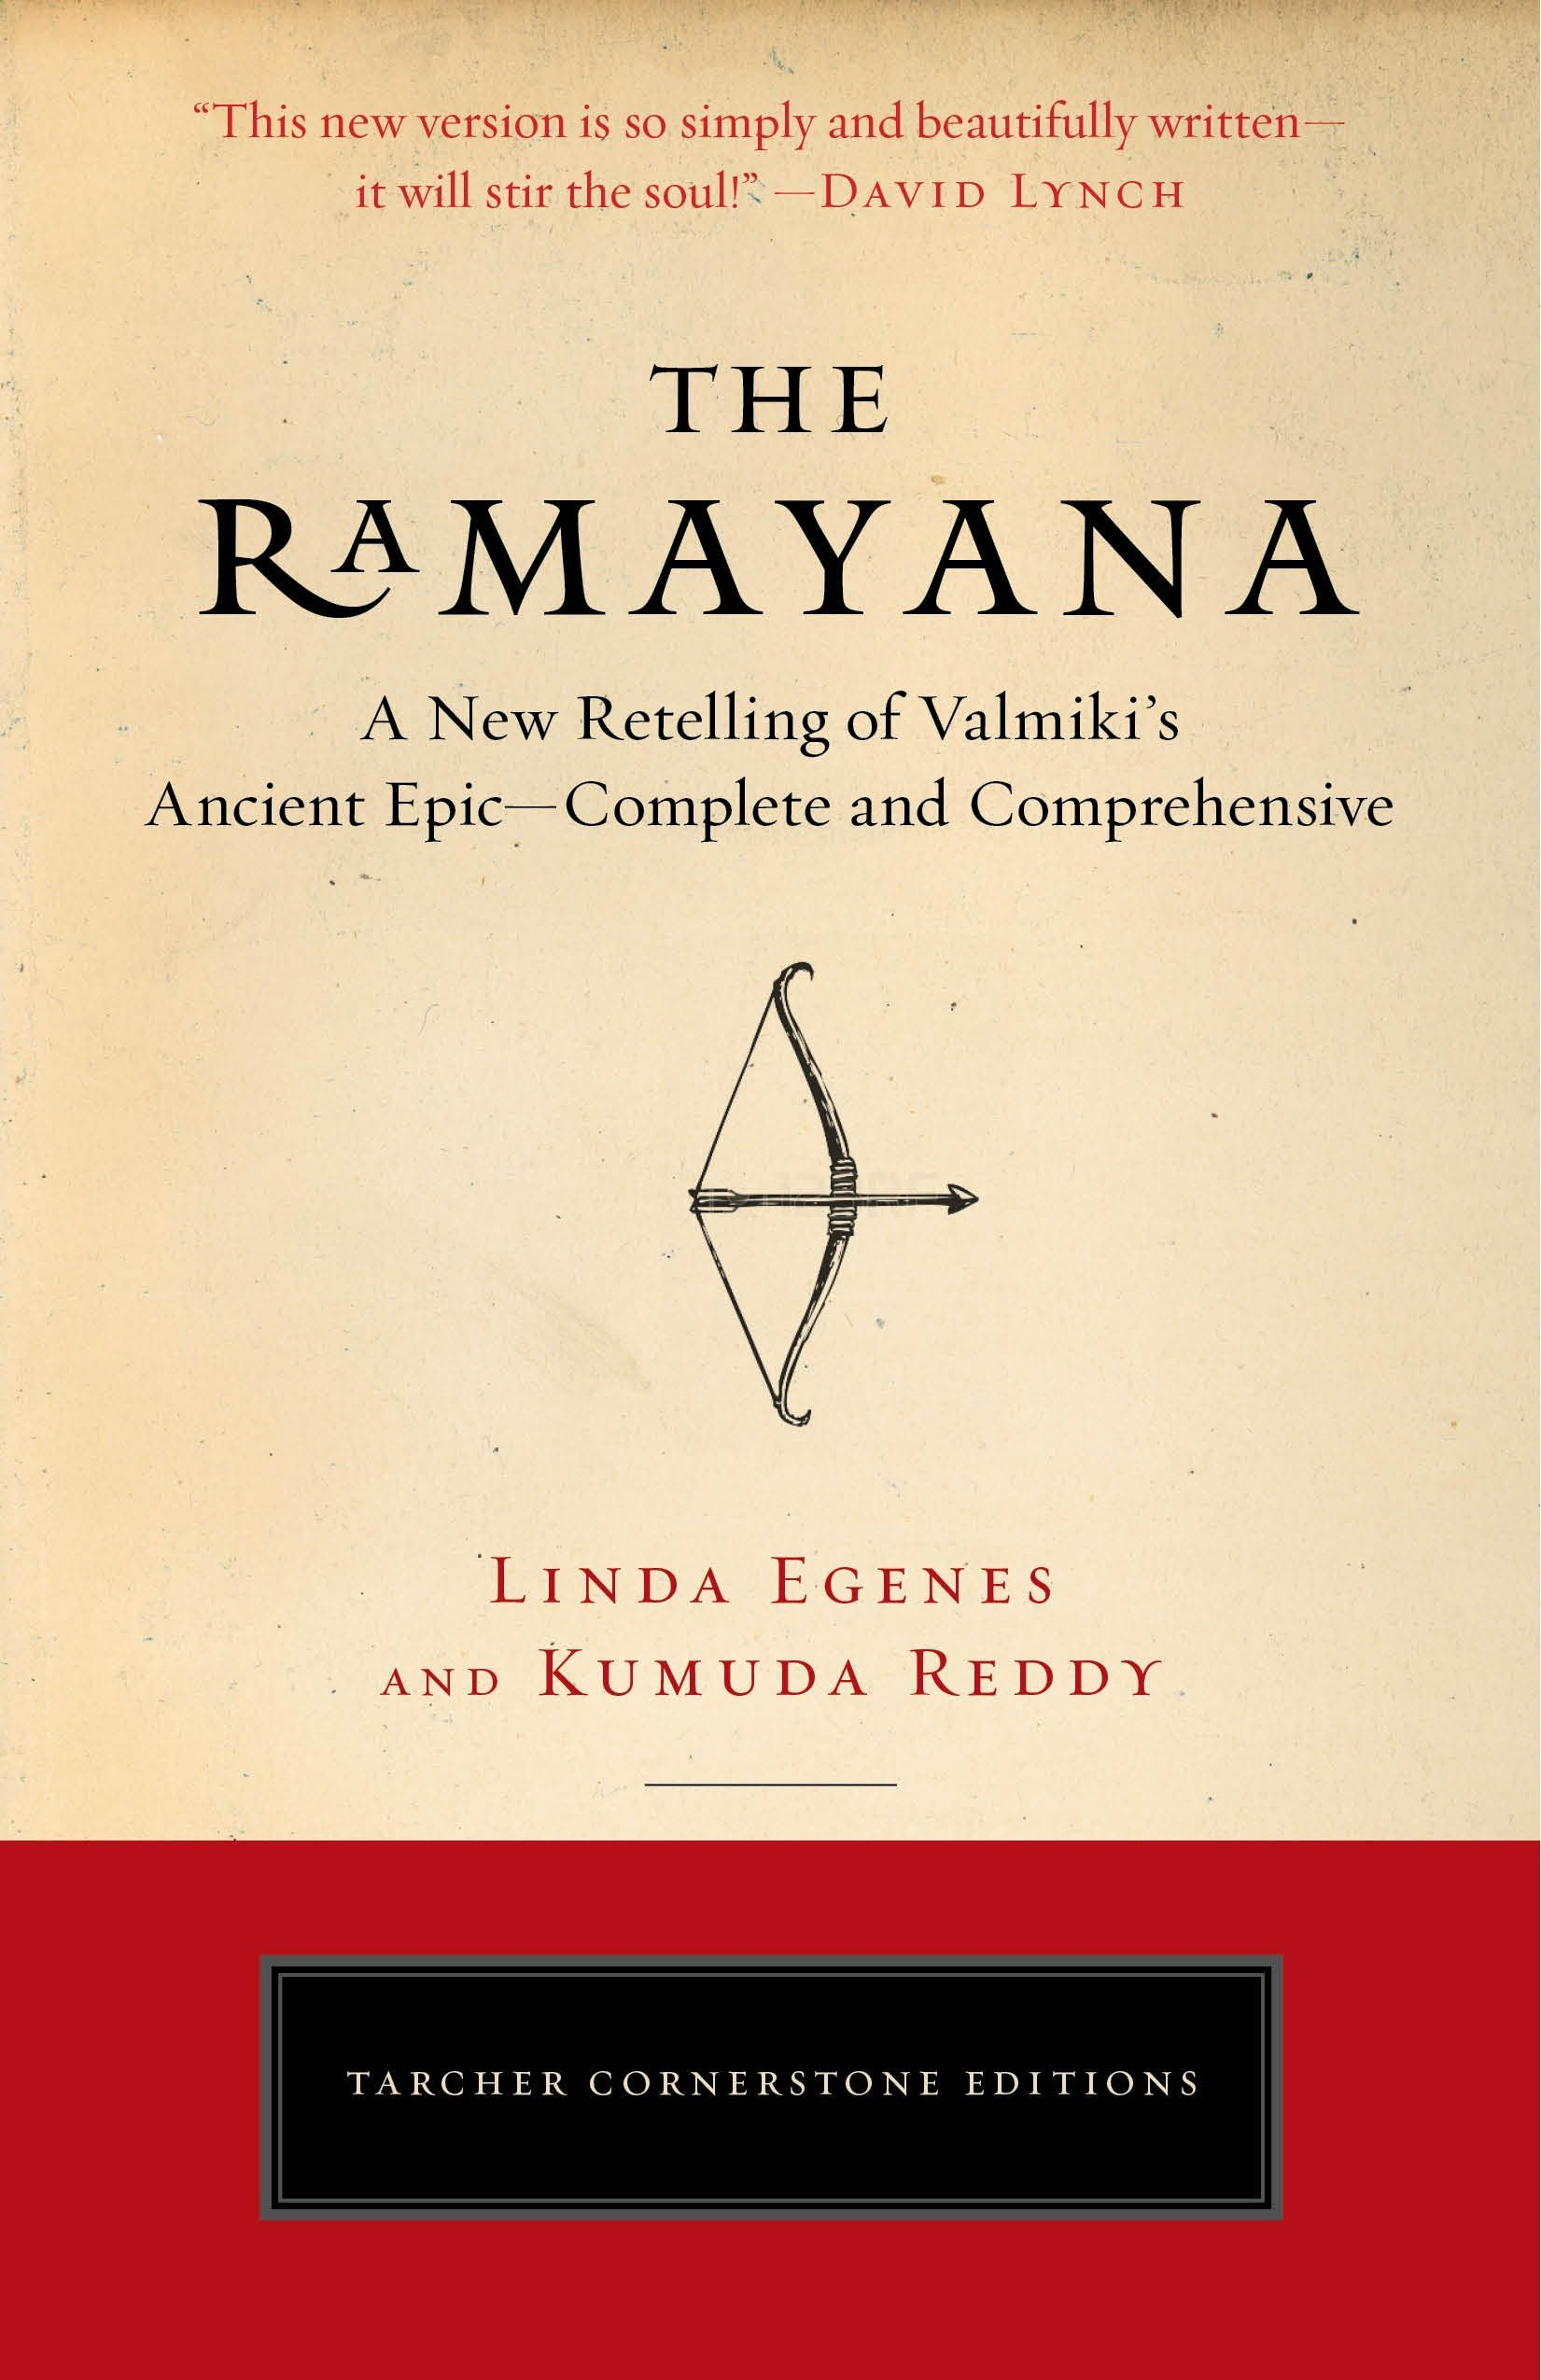 The Ramayana: A New Retelling of Valmiki's Ancient Epic--Complete and Comprehensive (Tarcher Cornerstone Editions) PDF